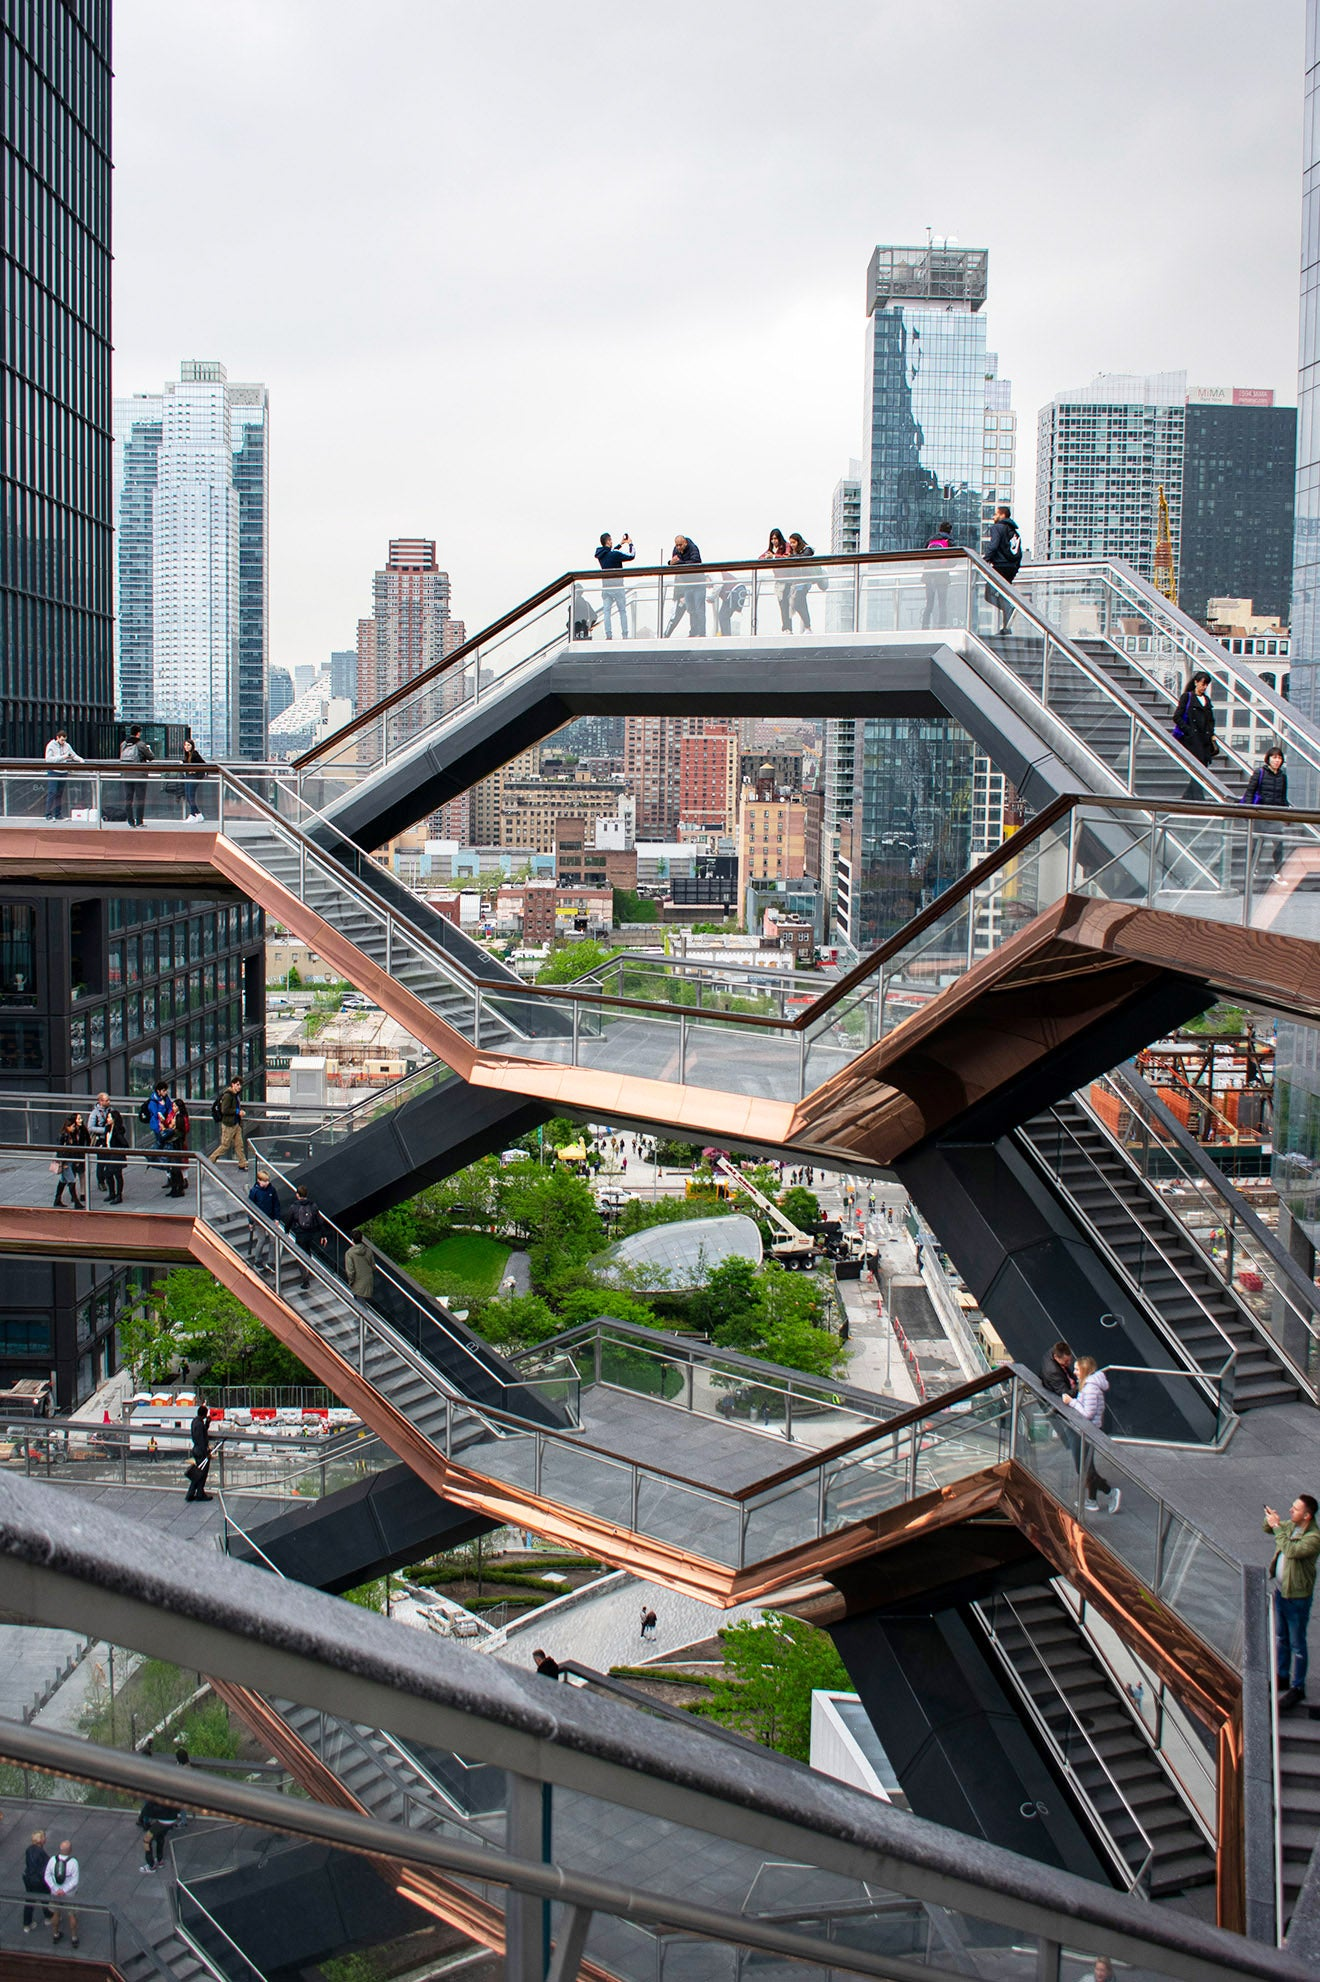 Thomas Heatherwick Vessel Hudson Yards, New York